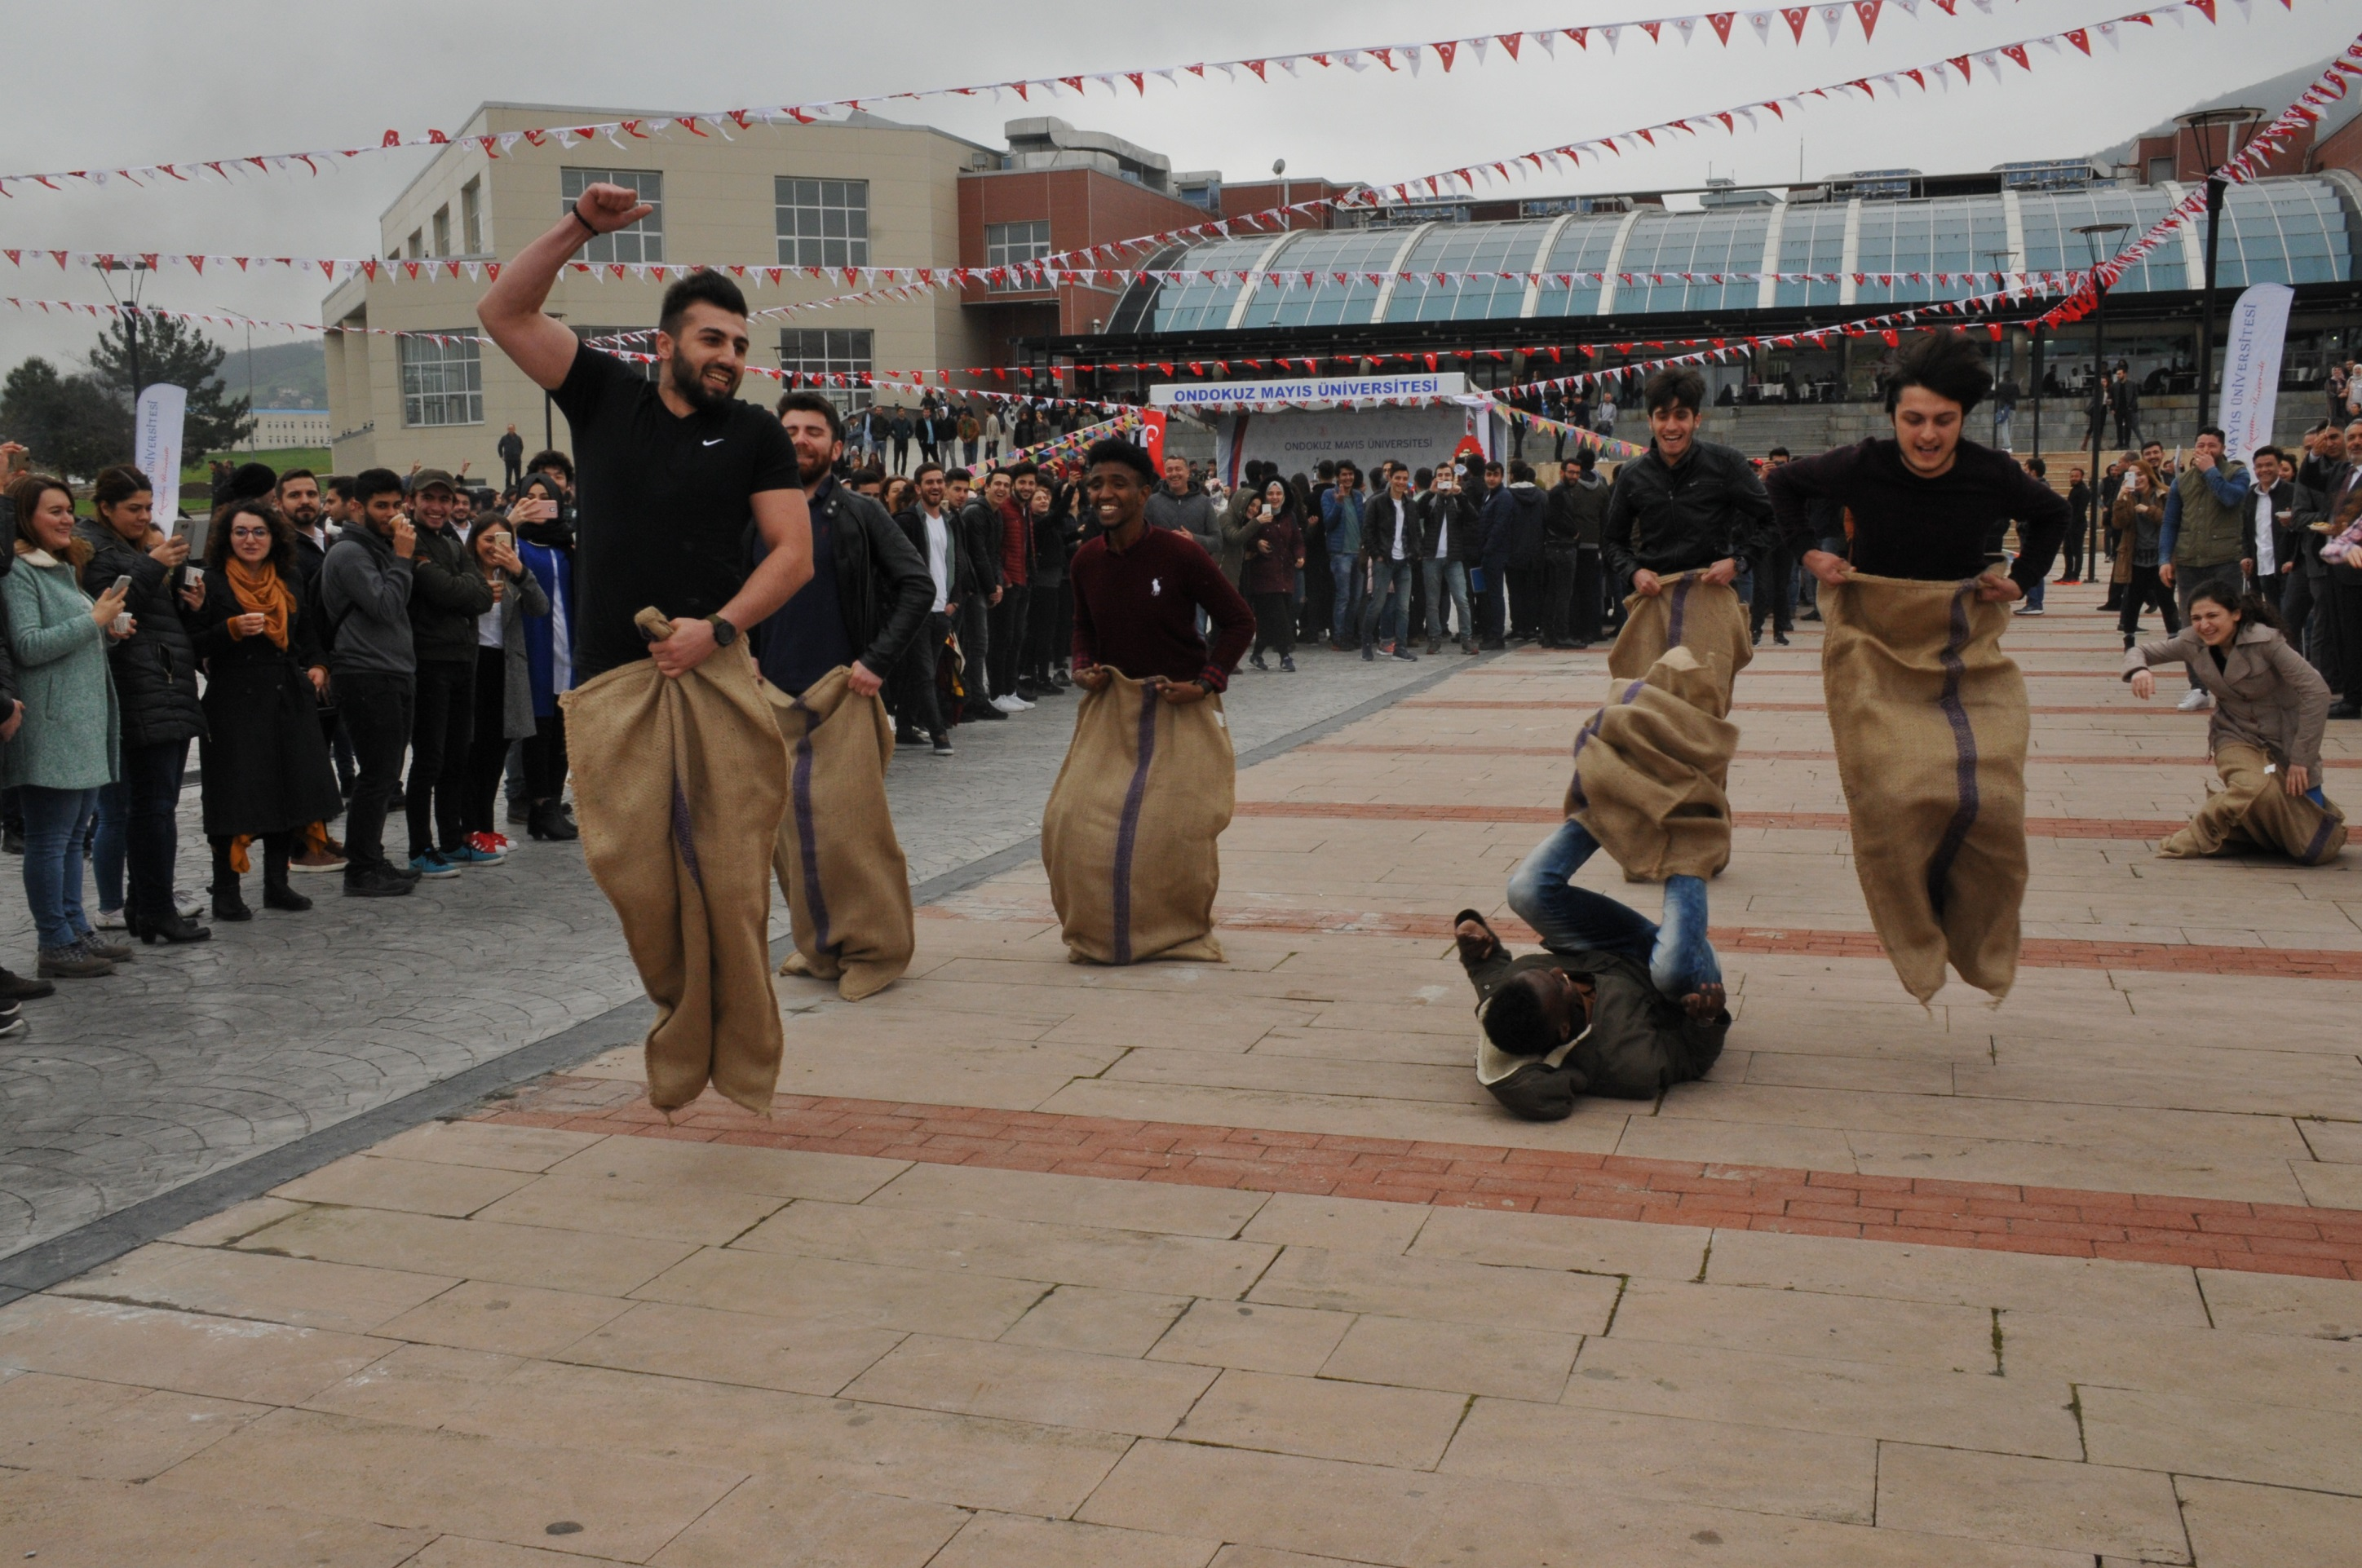 http://www.omu.edu.tr/sites/default/files/files/omu_family_enthusiastically_celebrated_newroz/dsc_0335.jpg